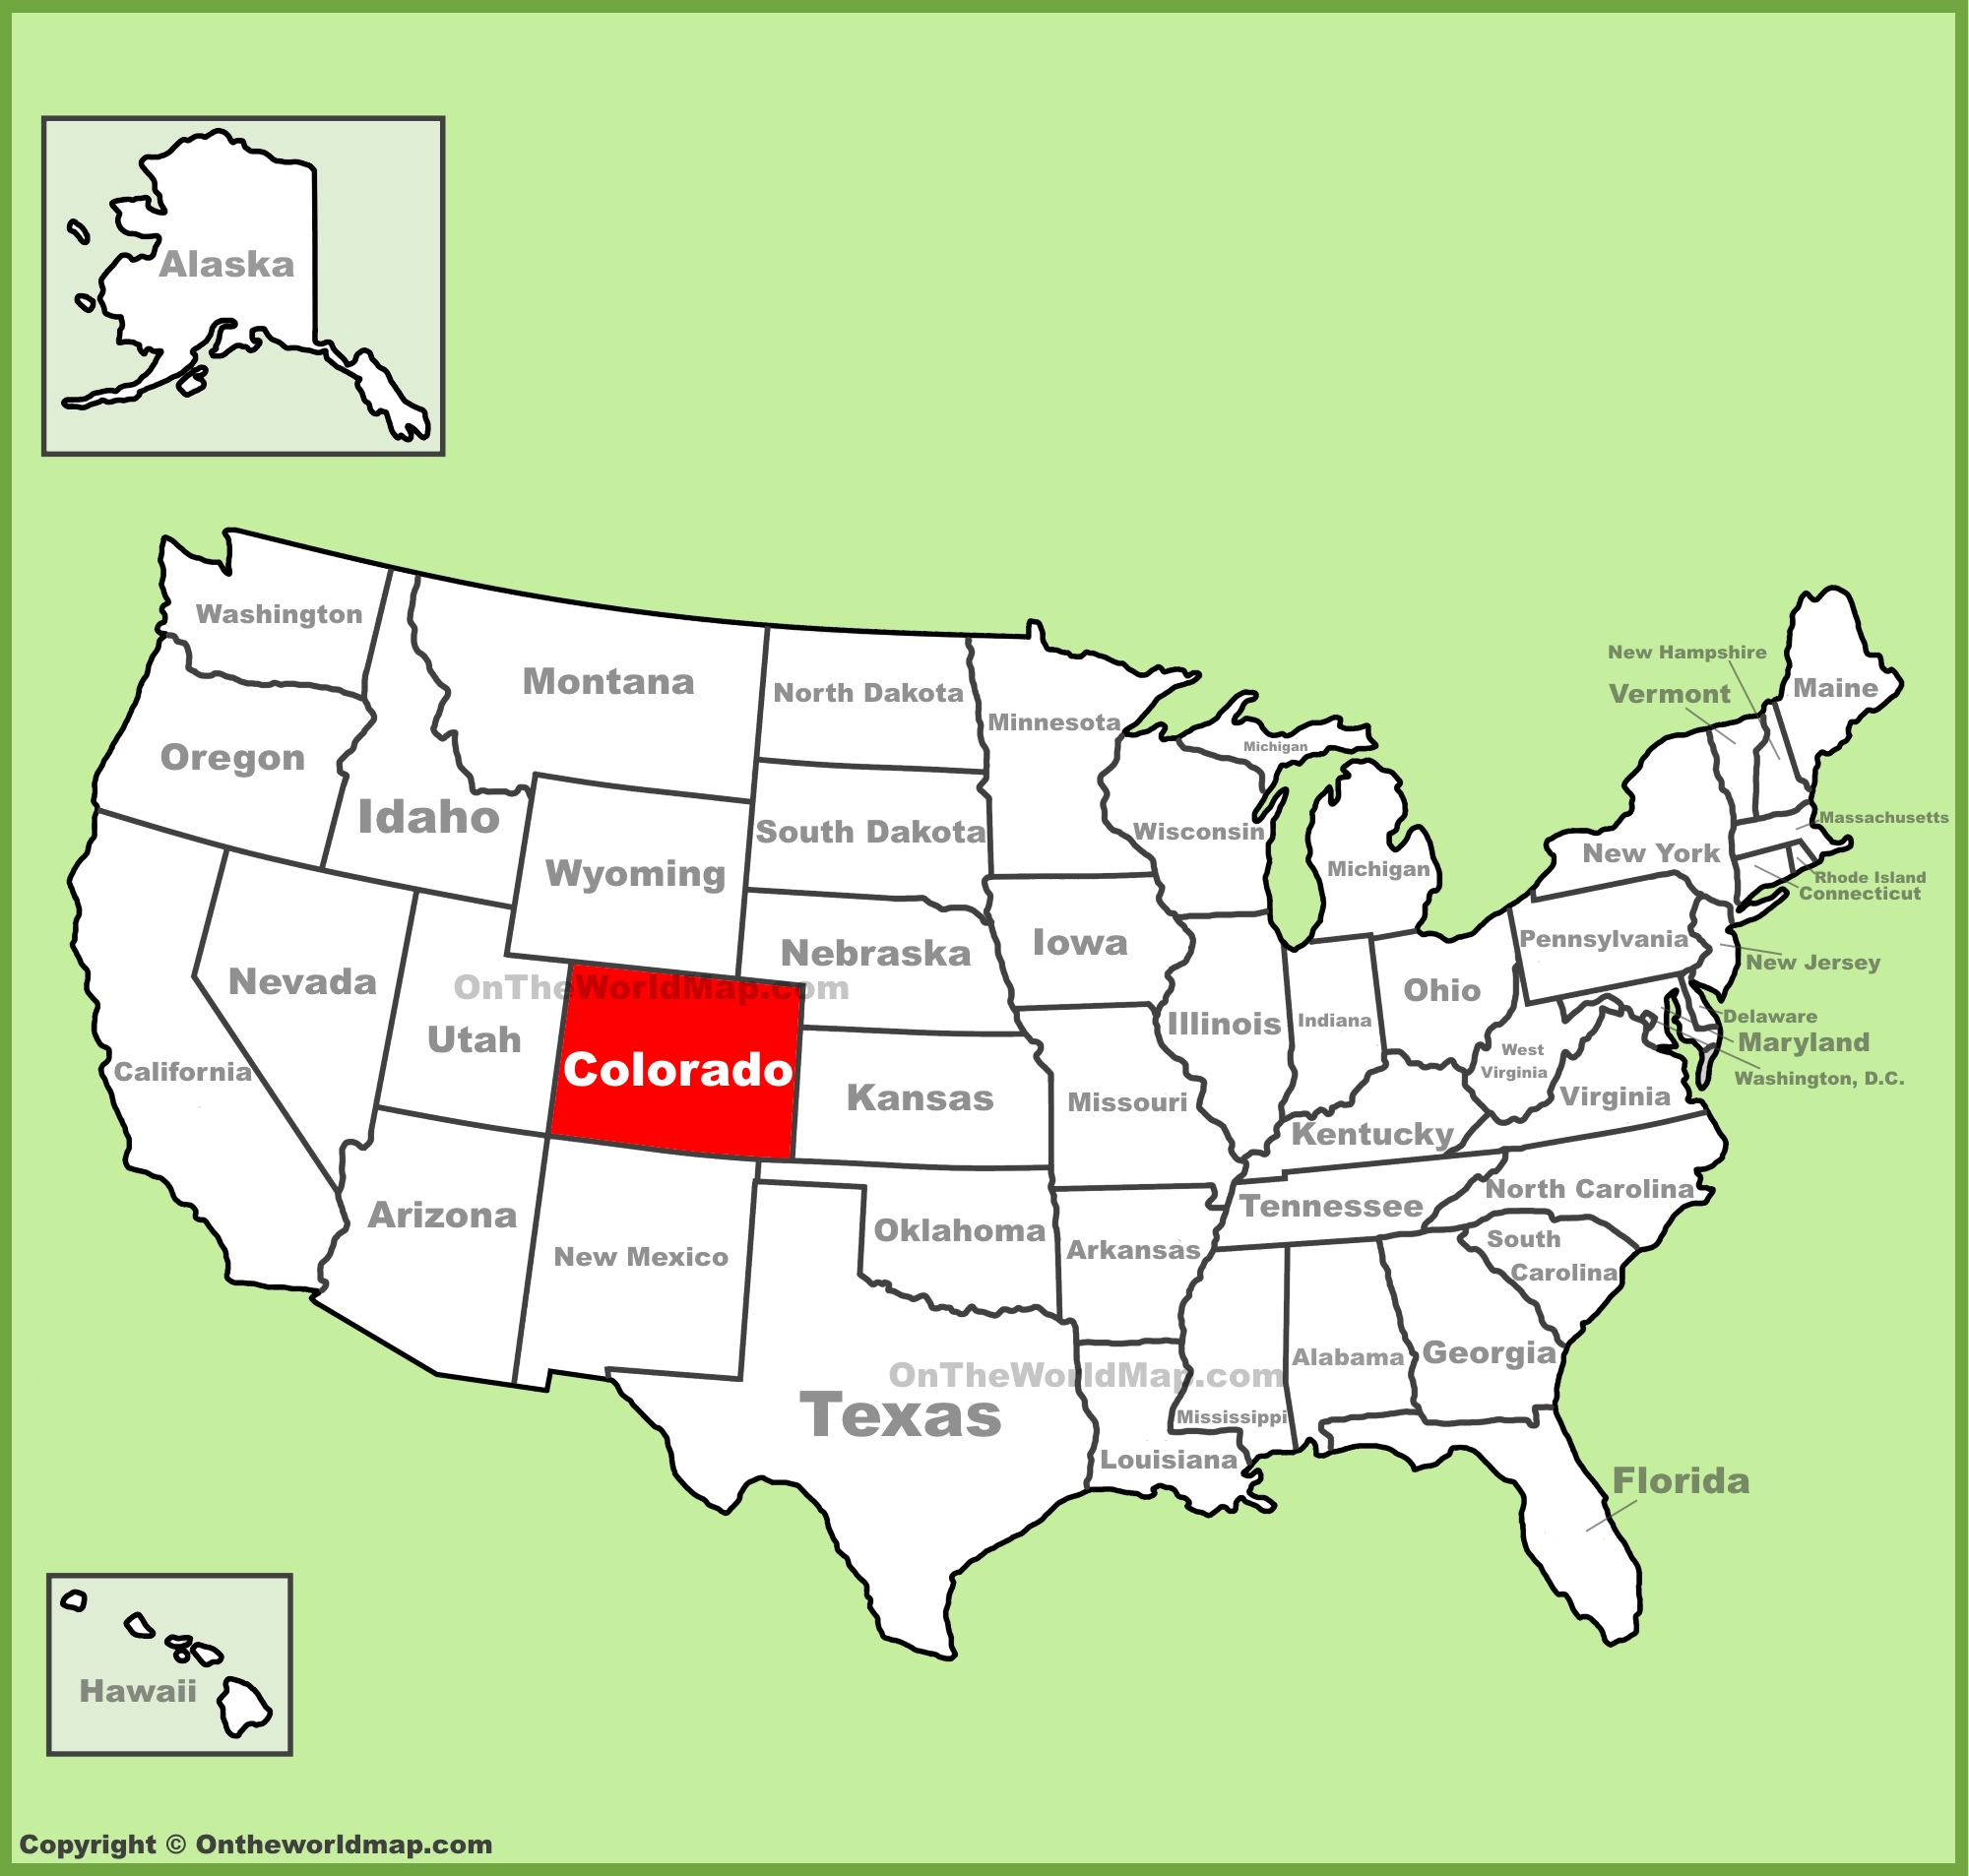 Colorado Location On The US Map - Colorado on a us map